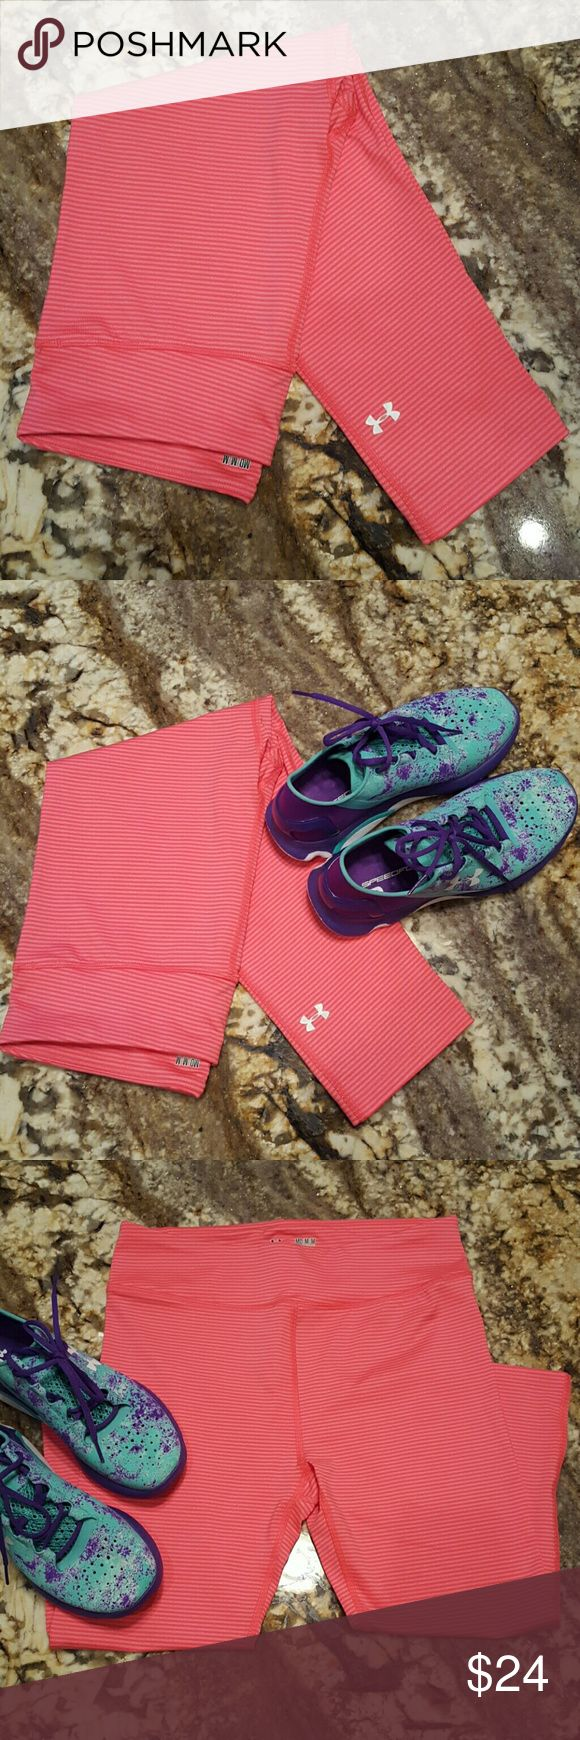 Under Armour Capri leggings These are a coral and hot pink Under Armour ladies Compression Heat Gear in size medium. No tears or stains. Worn maybe twice. Needs to go. Make me an offer Under Armour Pants Leggings